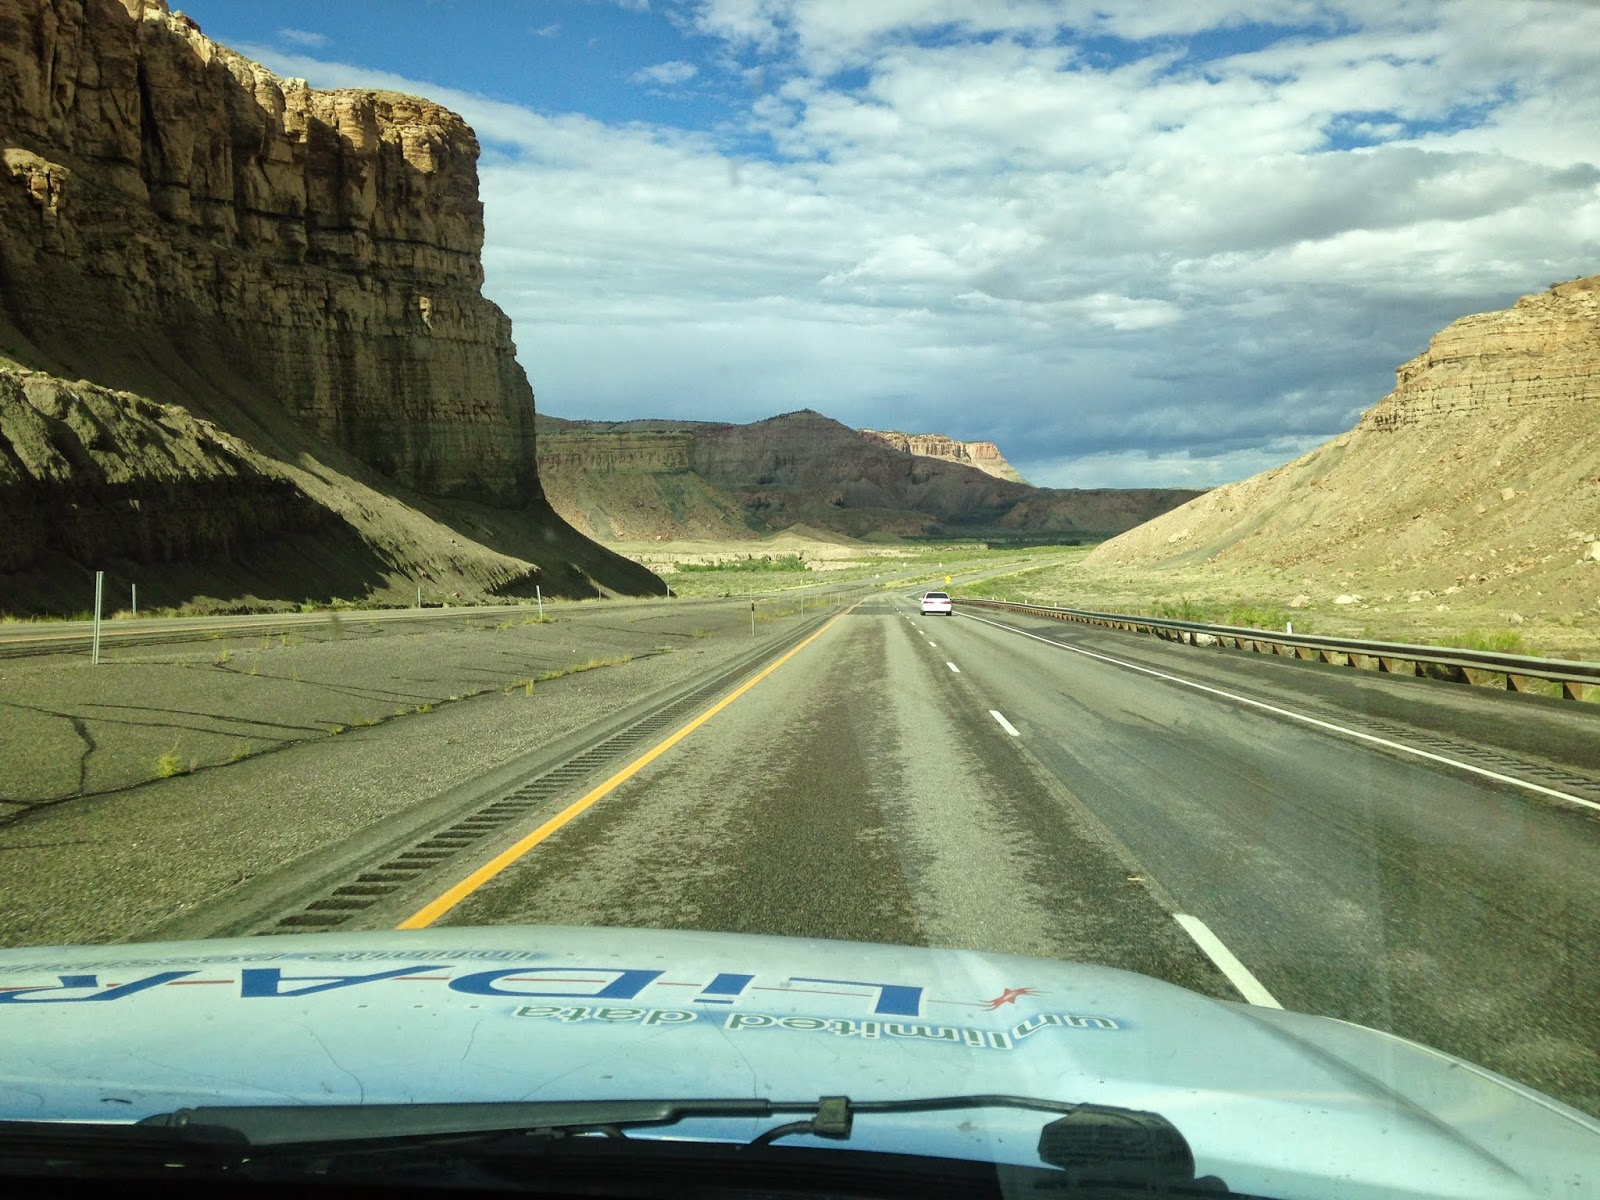 Mobile LiDAR Vehicle in Utah